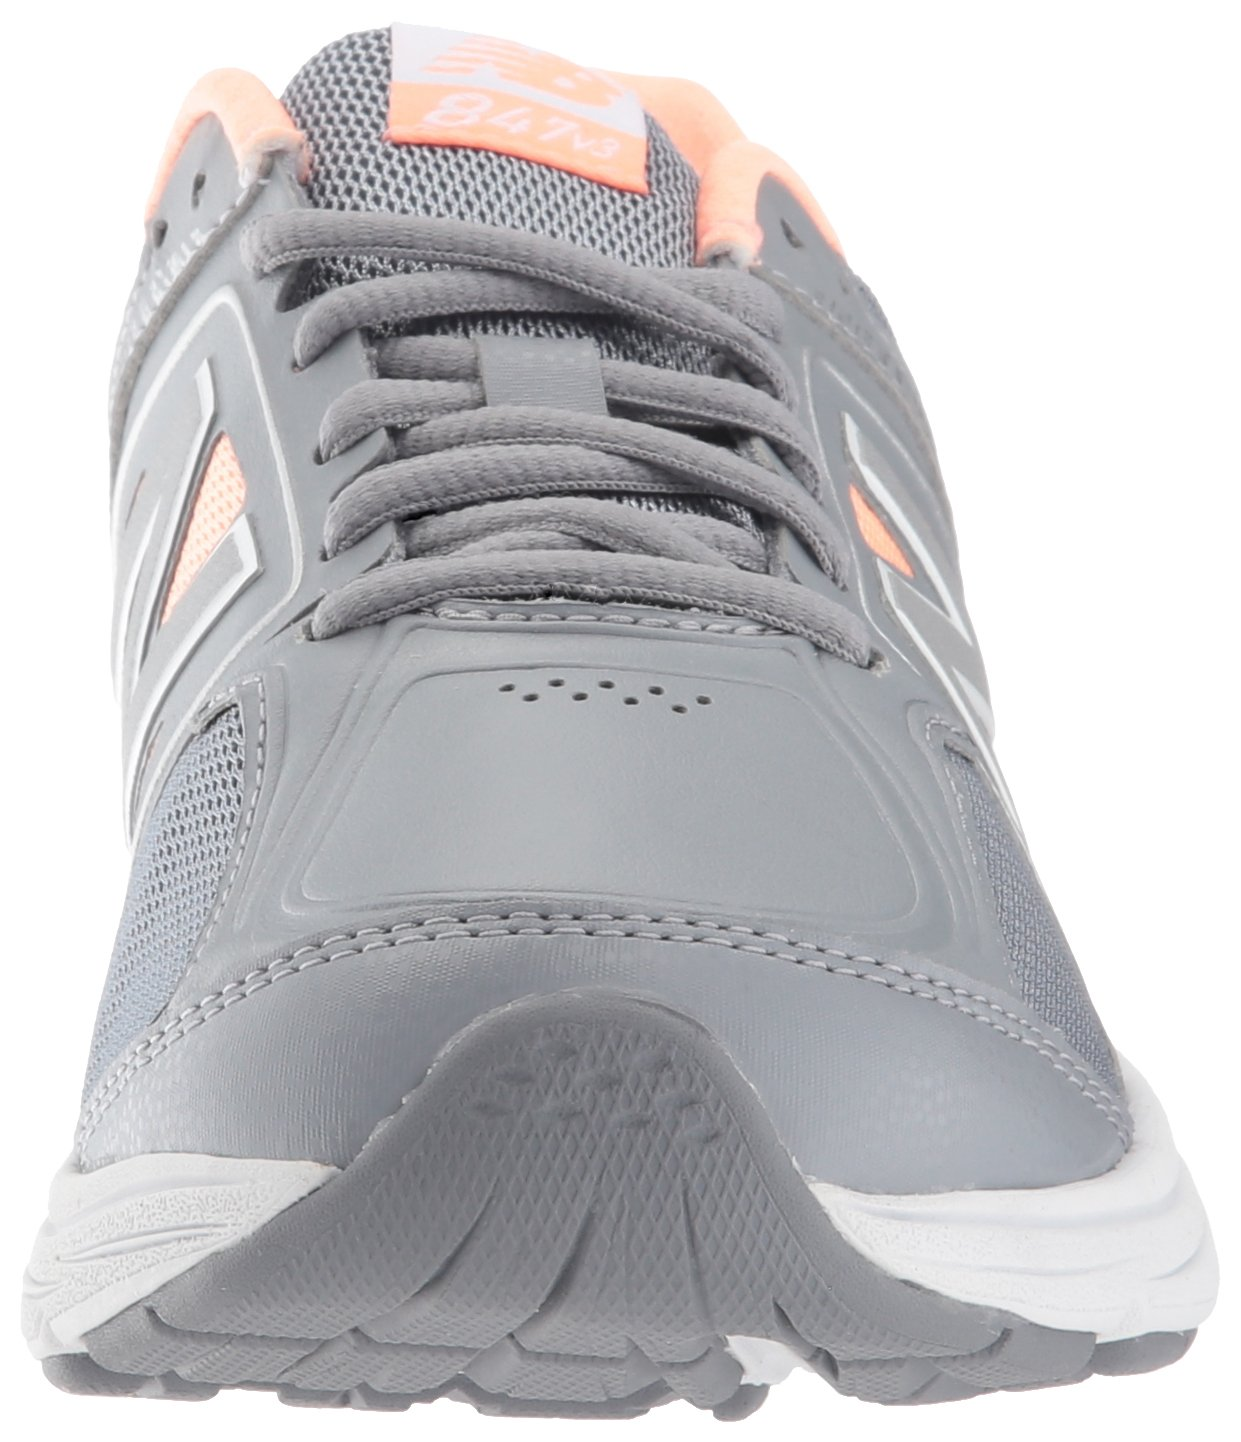 New Shoe Balance Women's 847v3 Walking Shoe New B01N97AP9M 8.5 B(M) US|Grey/Pink 141a7a